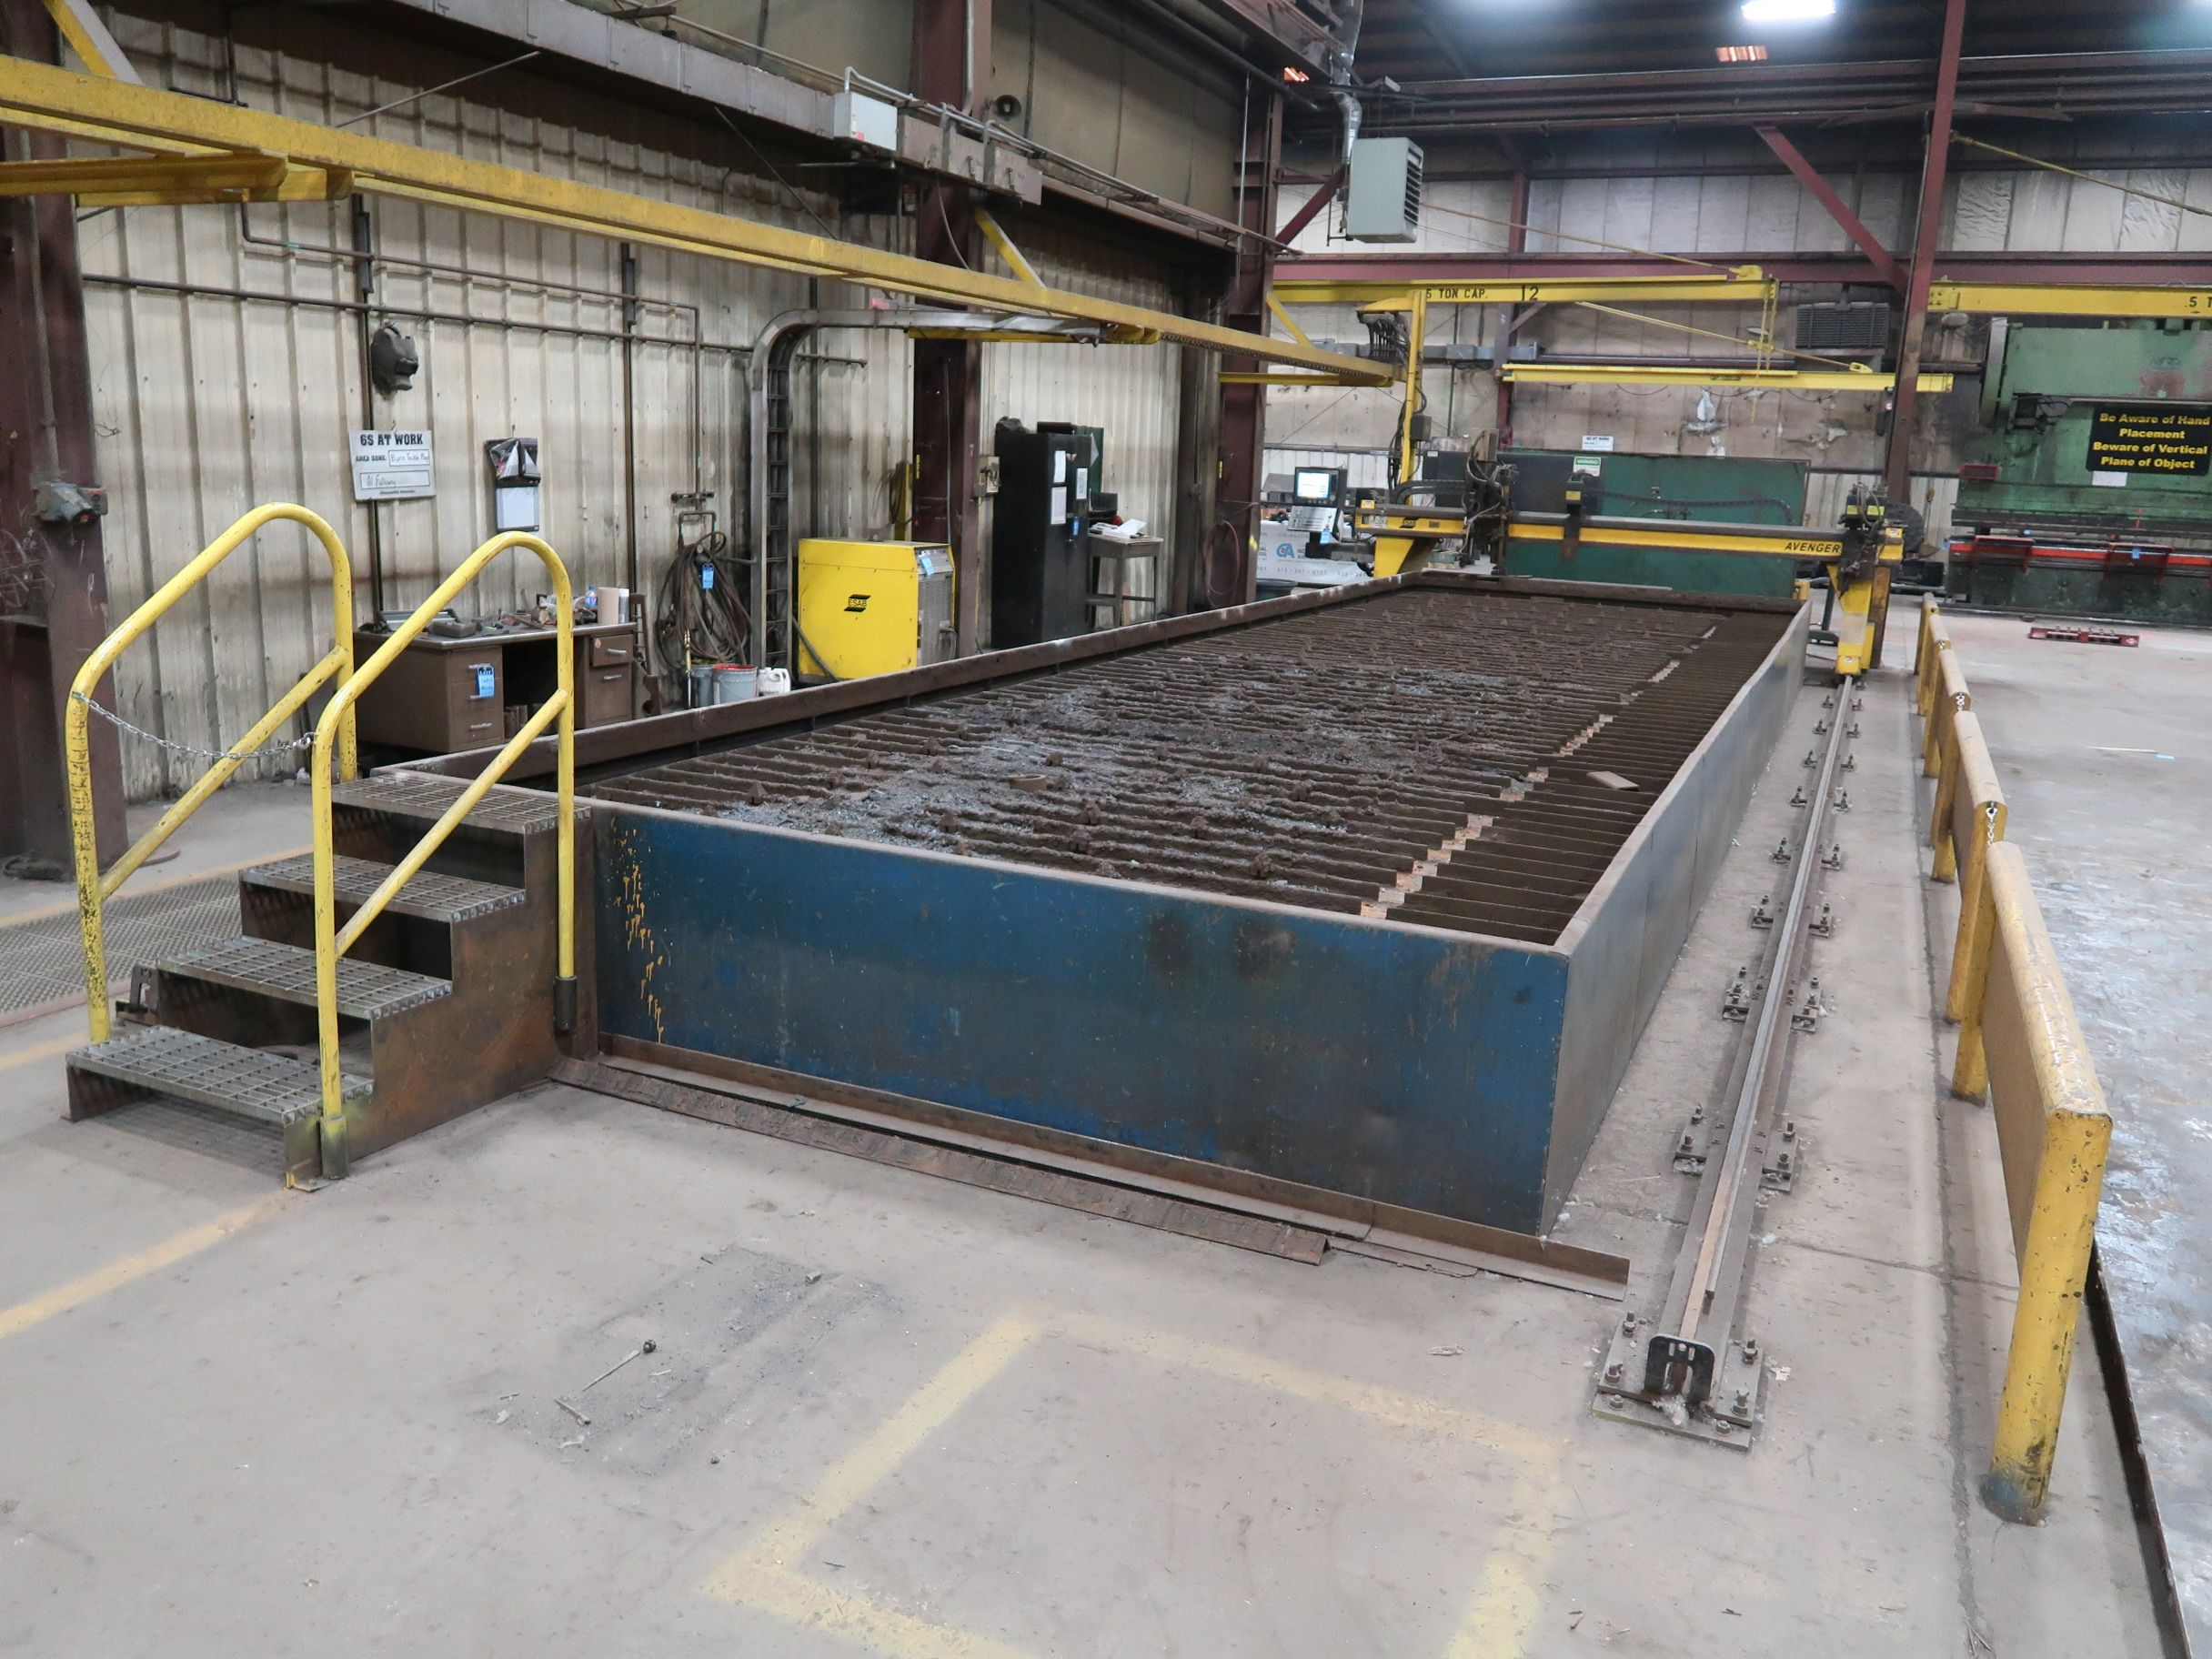 12' X 40' ESAB MODEL AVENGER 1-12 VISION PLASMA TABLE W/ BURNY 10 CONTROL; S/N 0560986386, UPDATED - Image 3 of 23